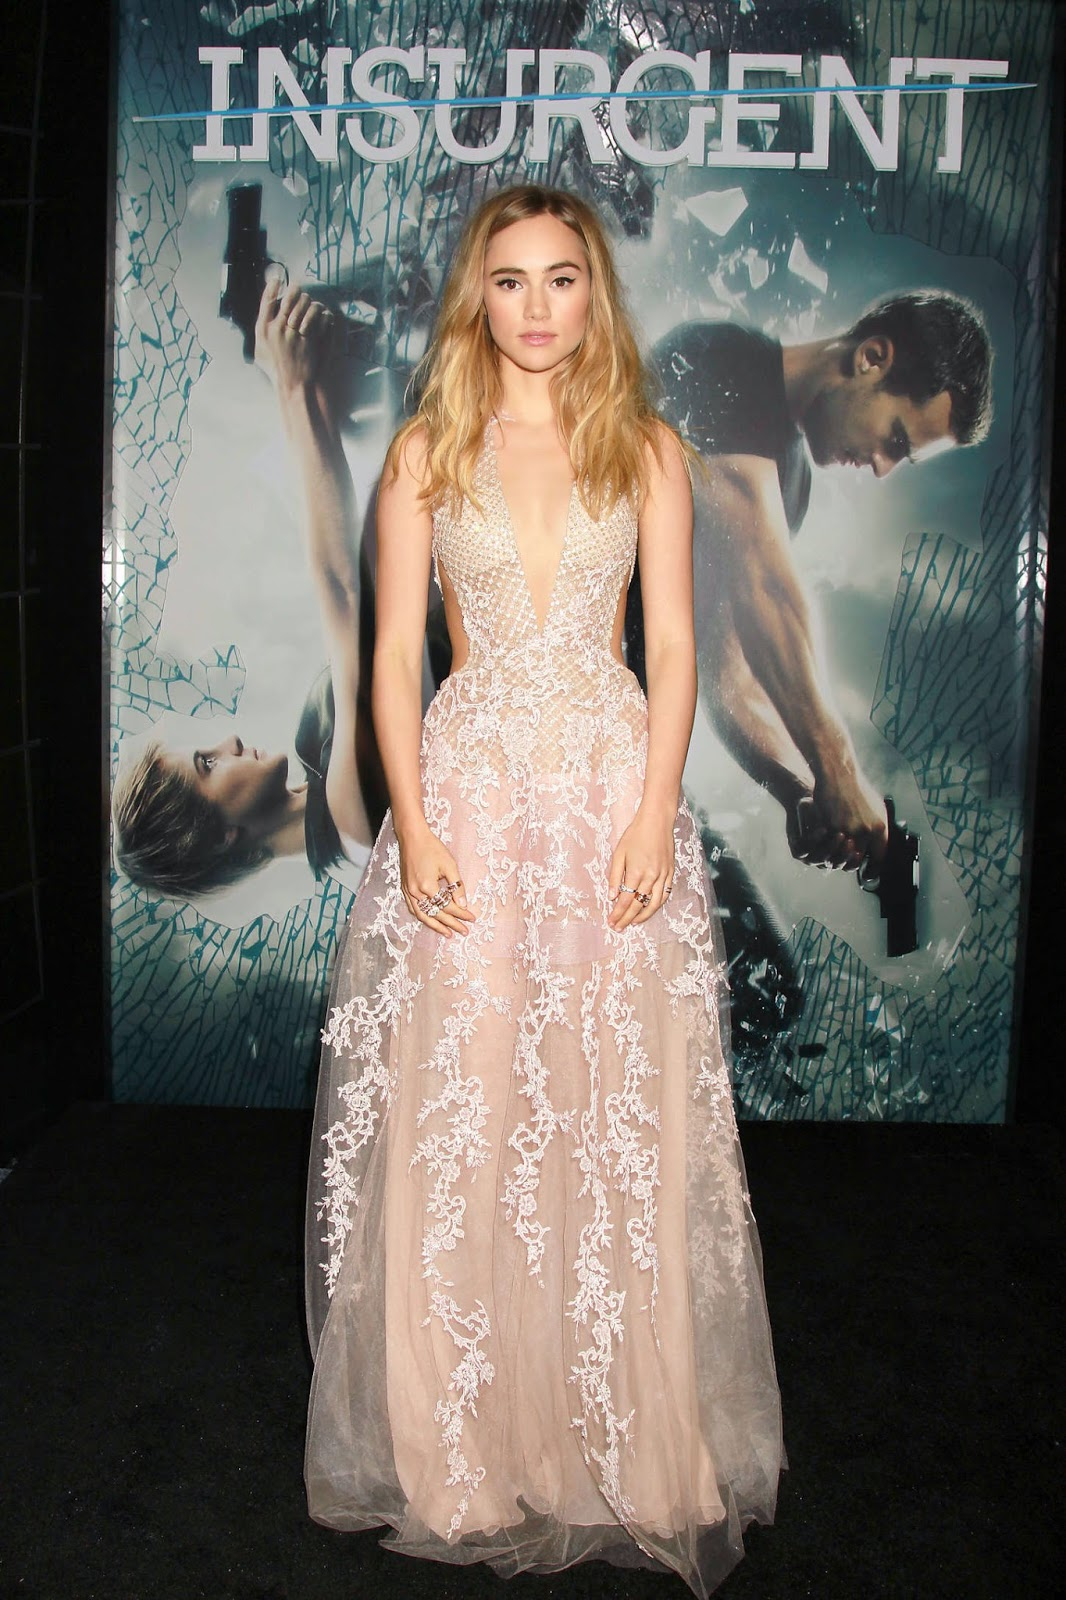 Suki Waterhouse in a low-cut dress at the 'Insurgent' NY premiere